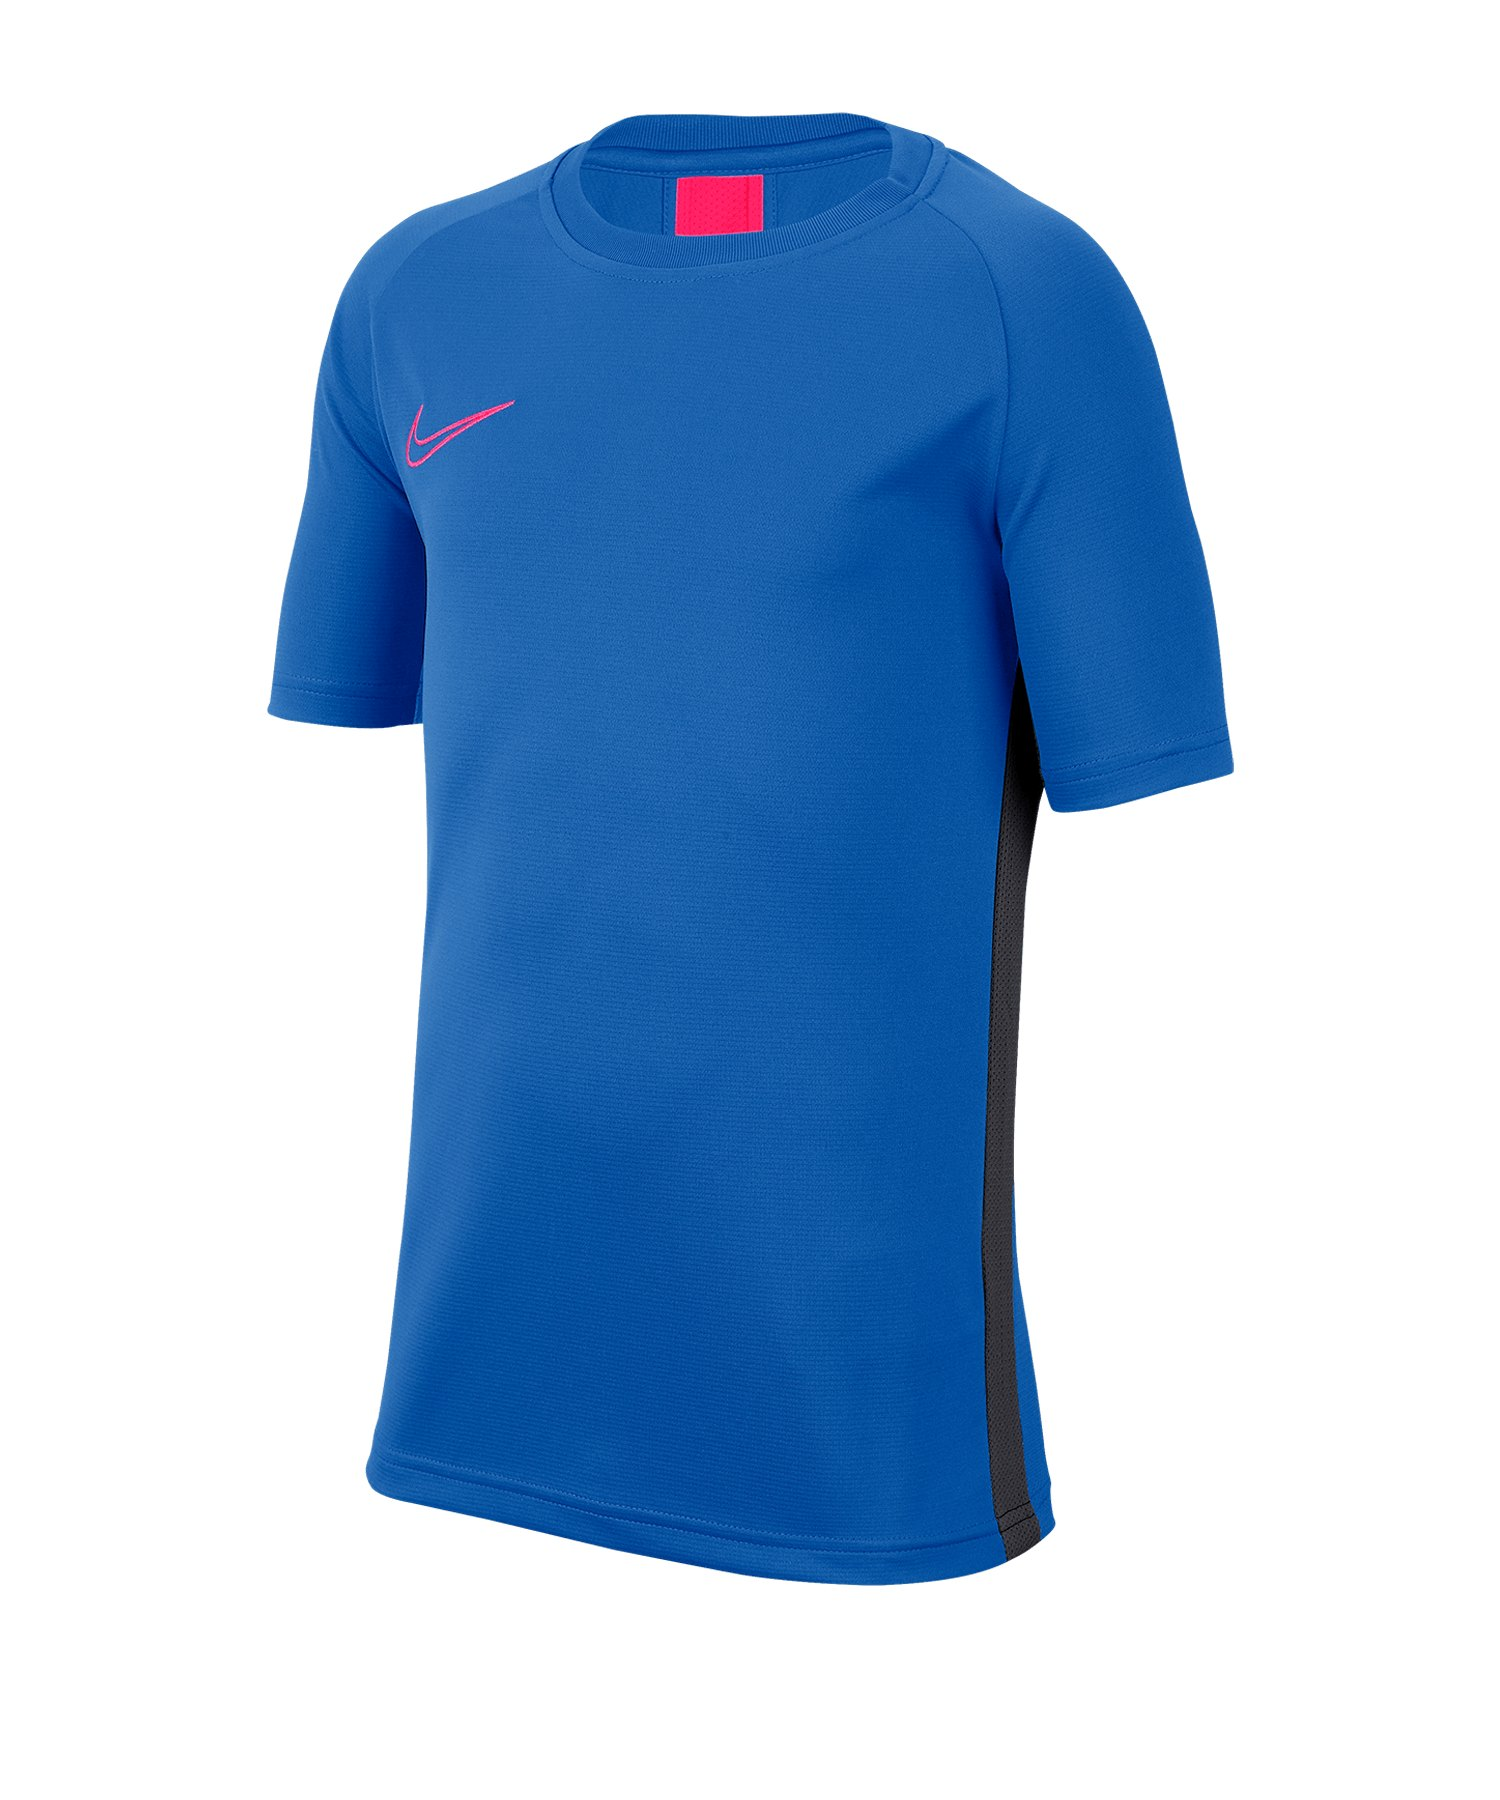 Nike Academy Dri-FIT Top T-Shirt Kids Blau F452 - blau